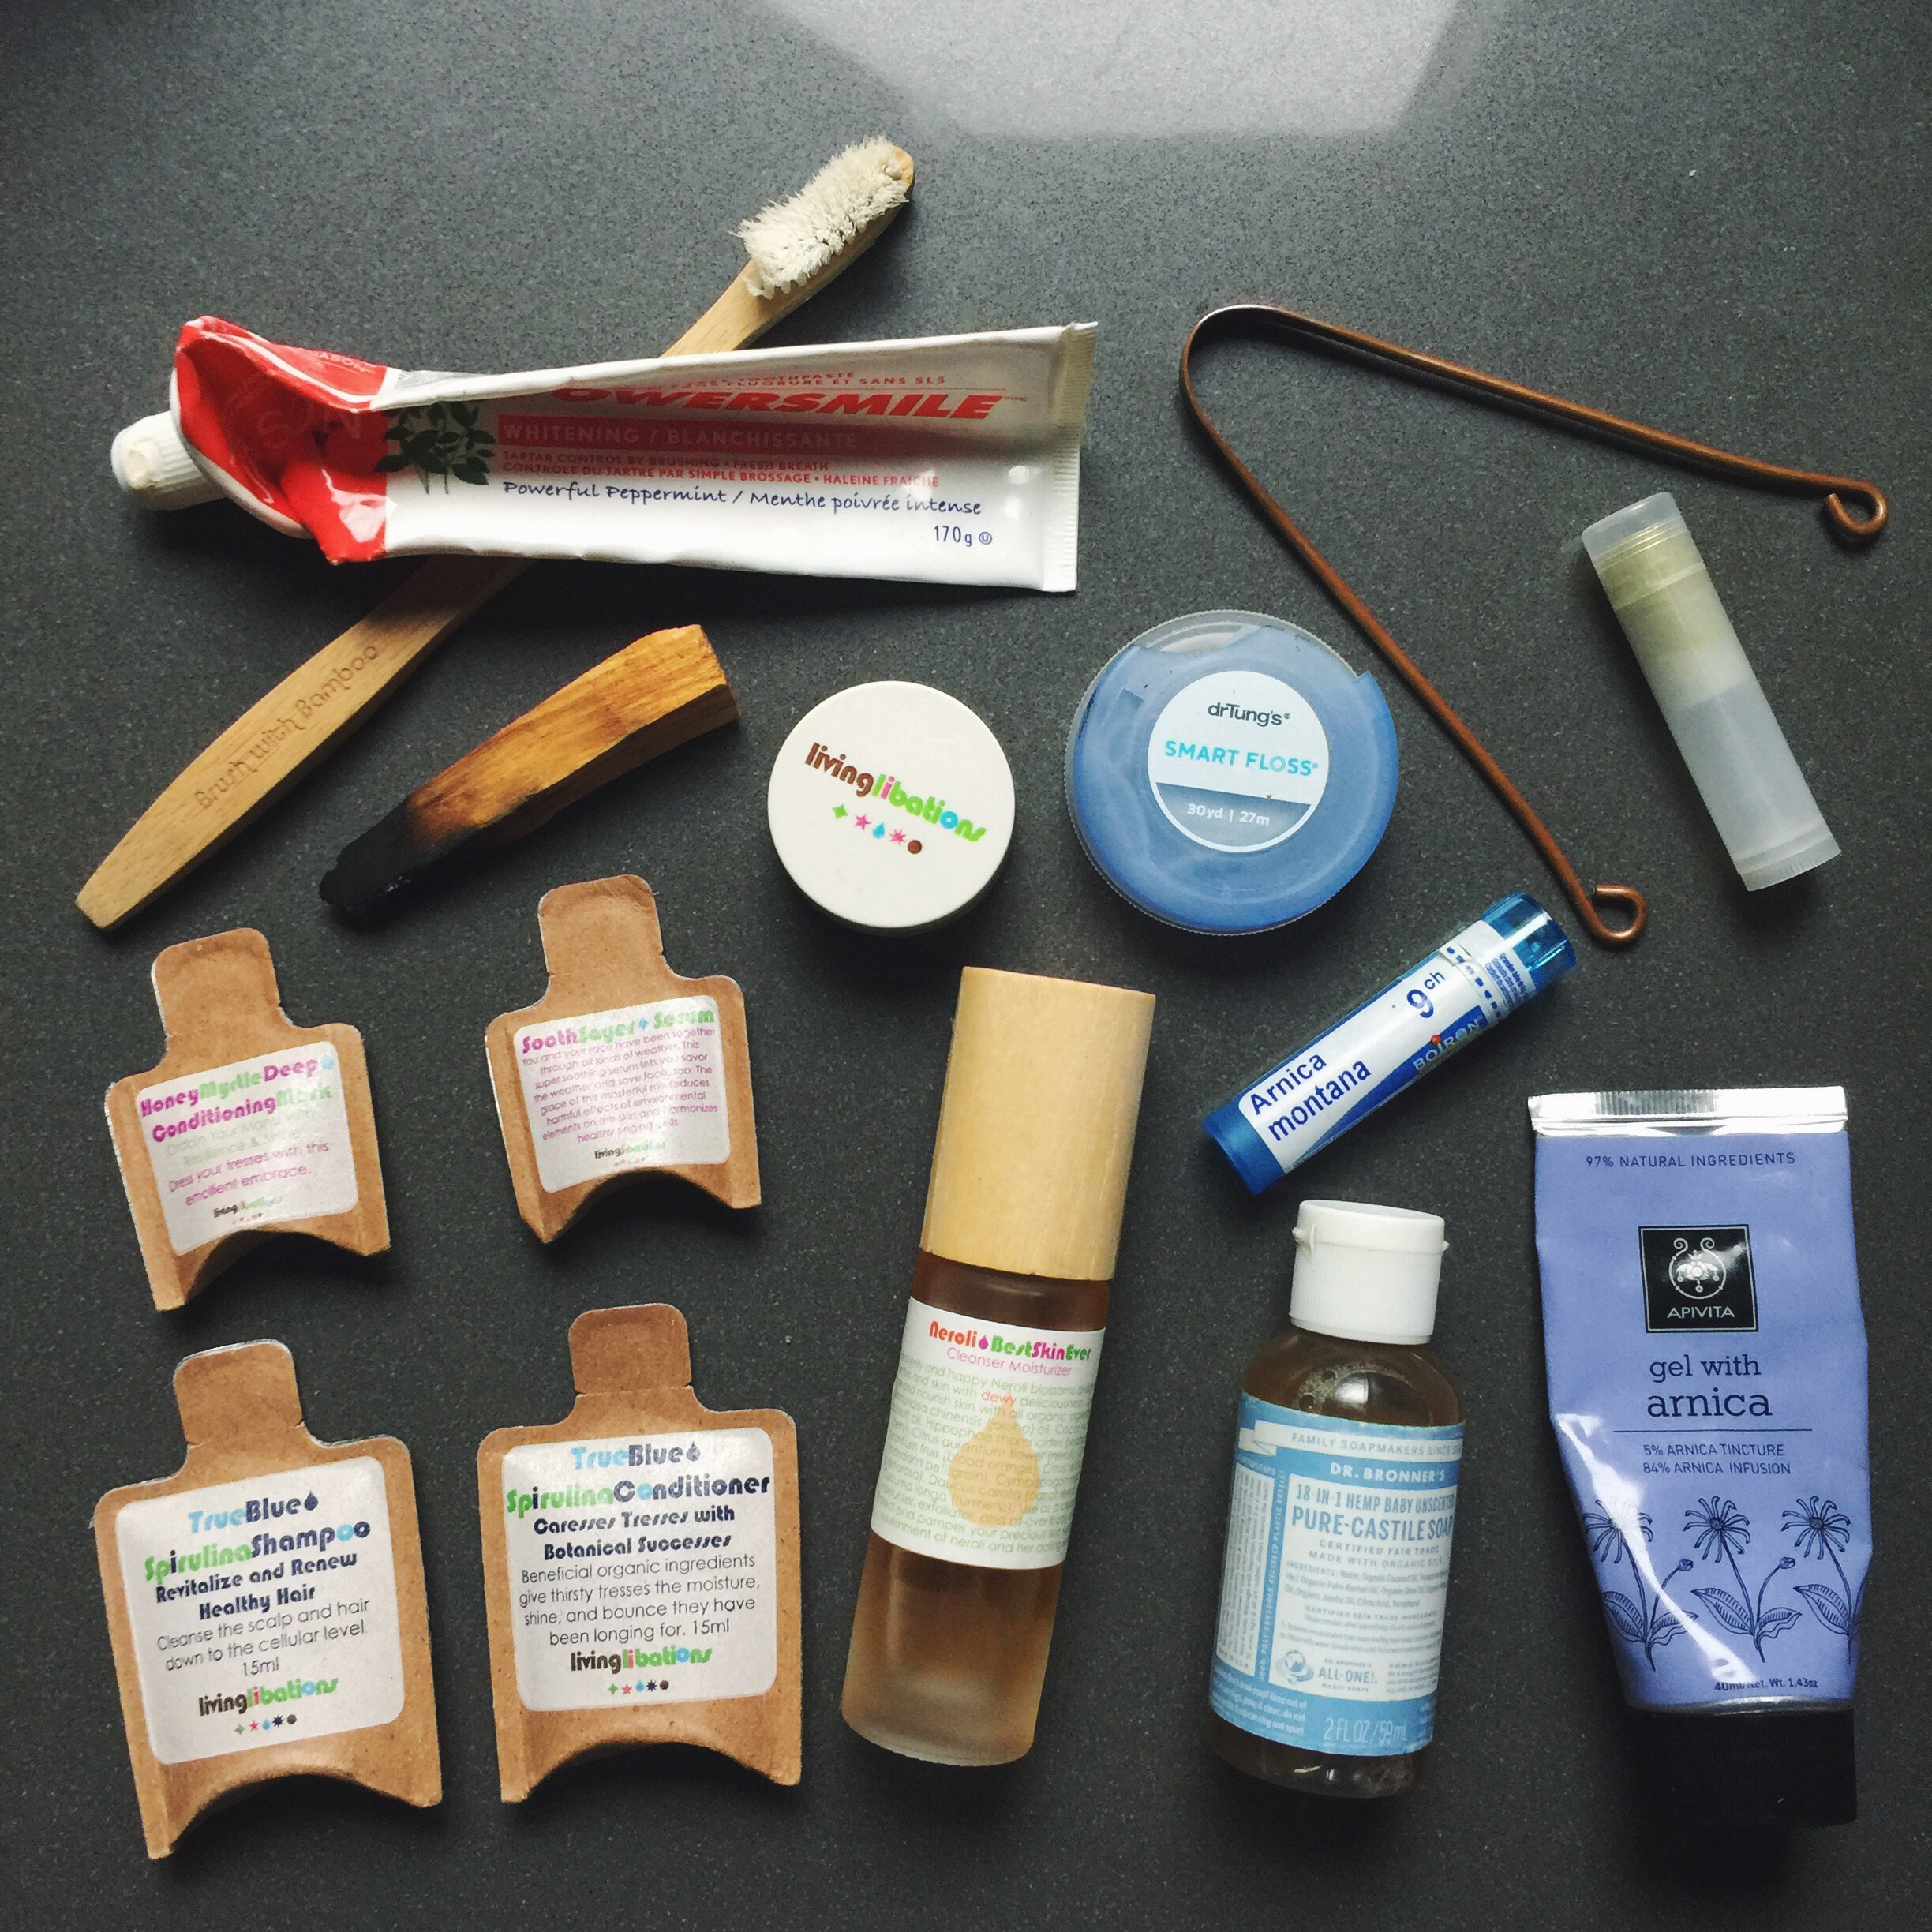 Despite the long list, my toiletries are very compact and barely take up any space in my bag. They're all under 100ml and easily fit in the 1L bag airline limit. Getting small travel-sized natural beauty products by Living Libations is the ideal way to travel!